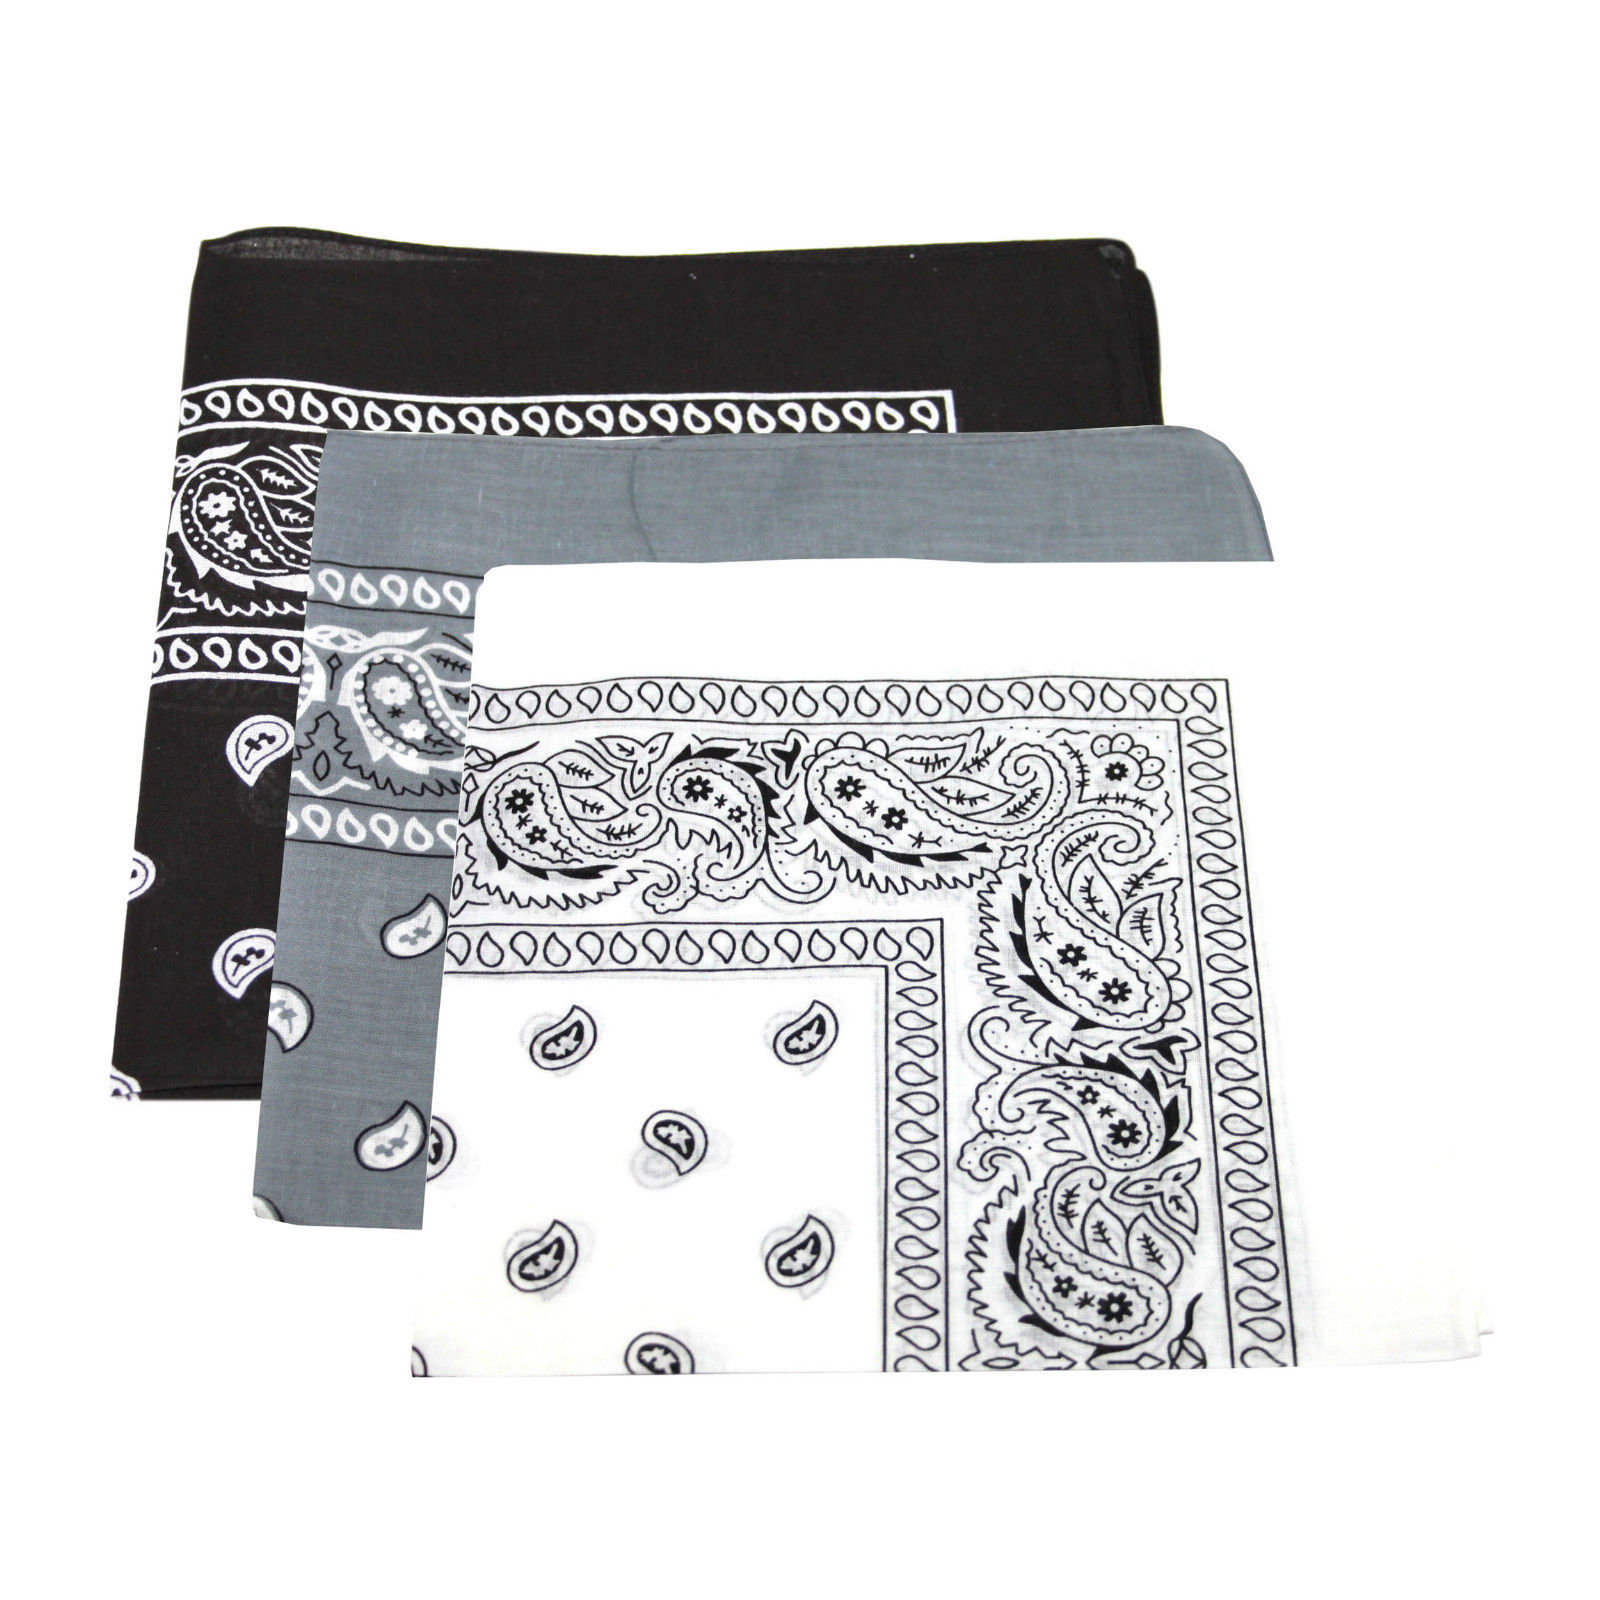 "Paisley Bandanas Black, White, Grey 22"" x 22"" Cotton (12 Pk)"